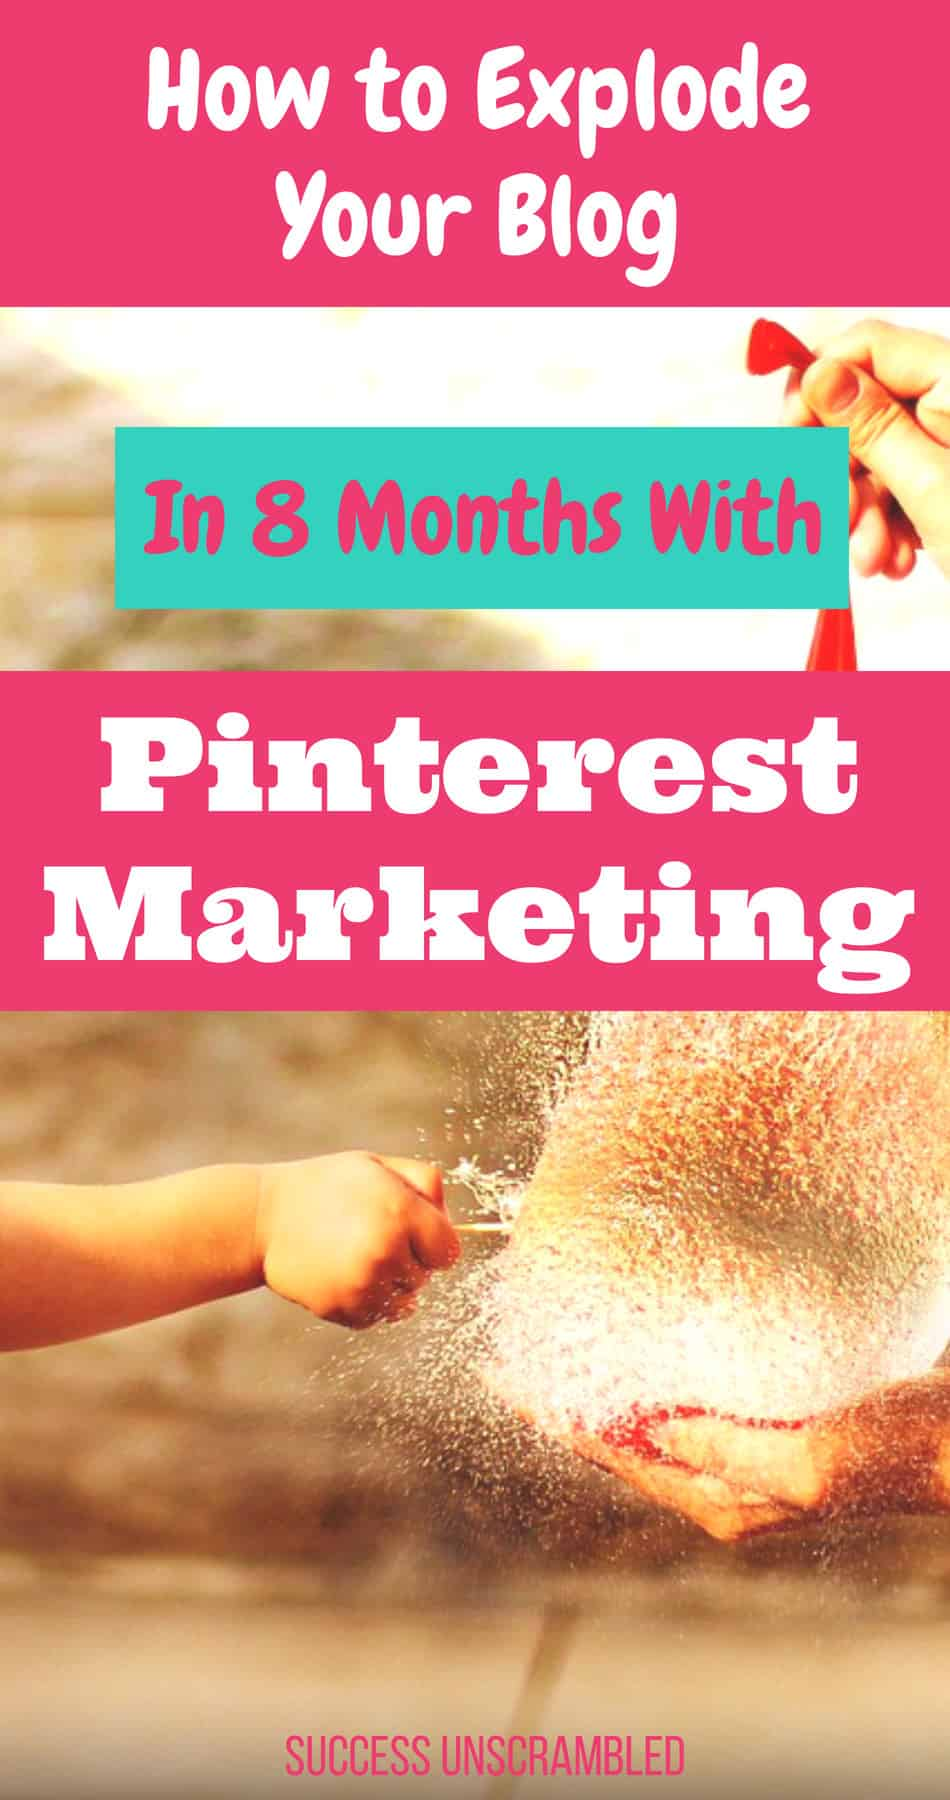 How to explode your blog in 8 months with Pinterest marketing-950x1800